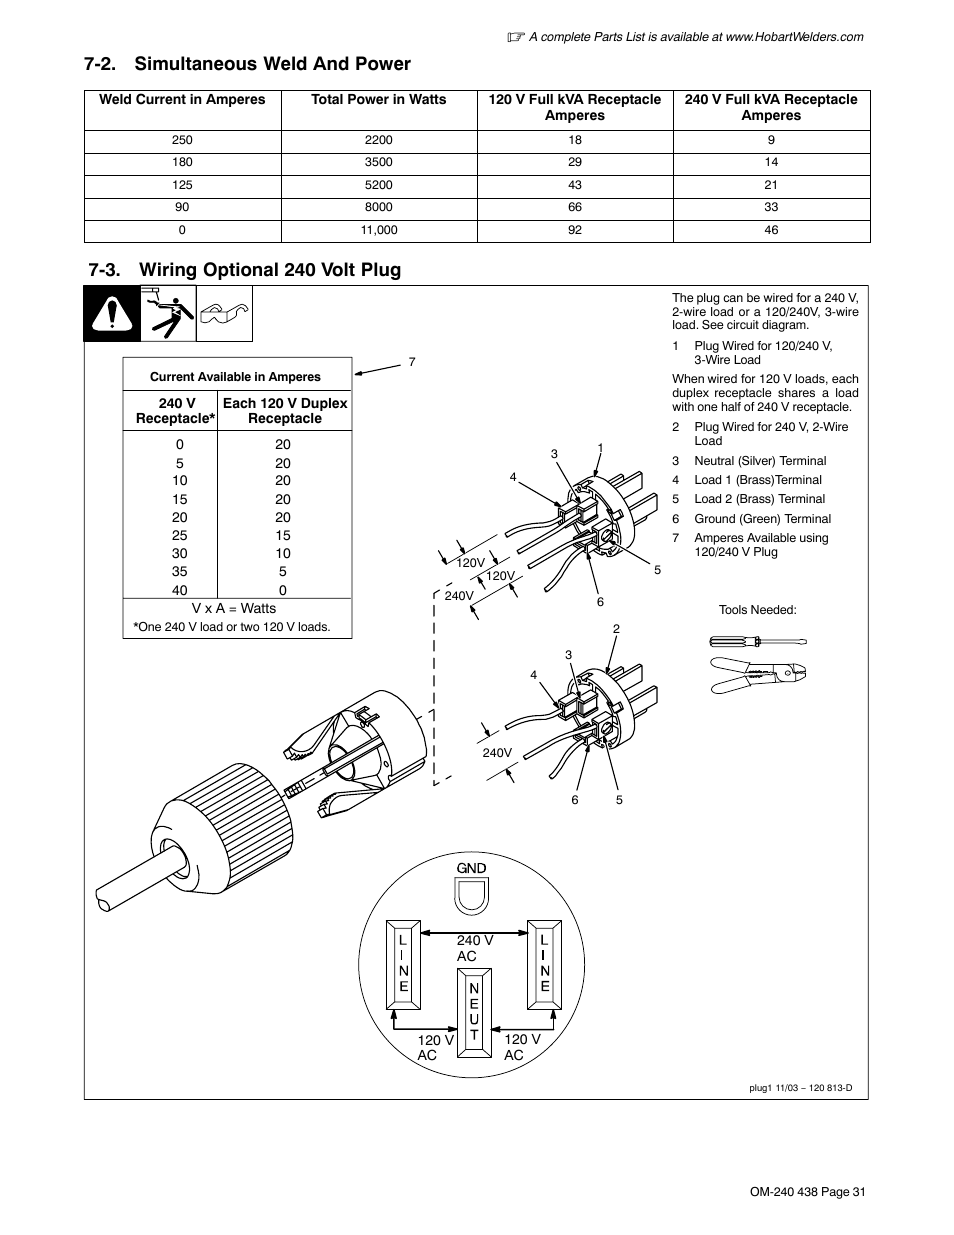 hight resolution of 2 simultaneous weld and power 3 wiring optional 240 volt plug hobart